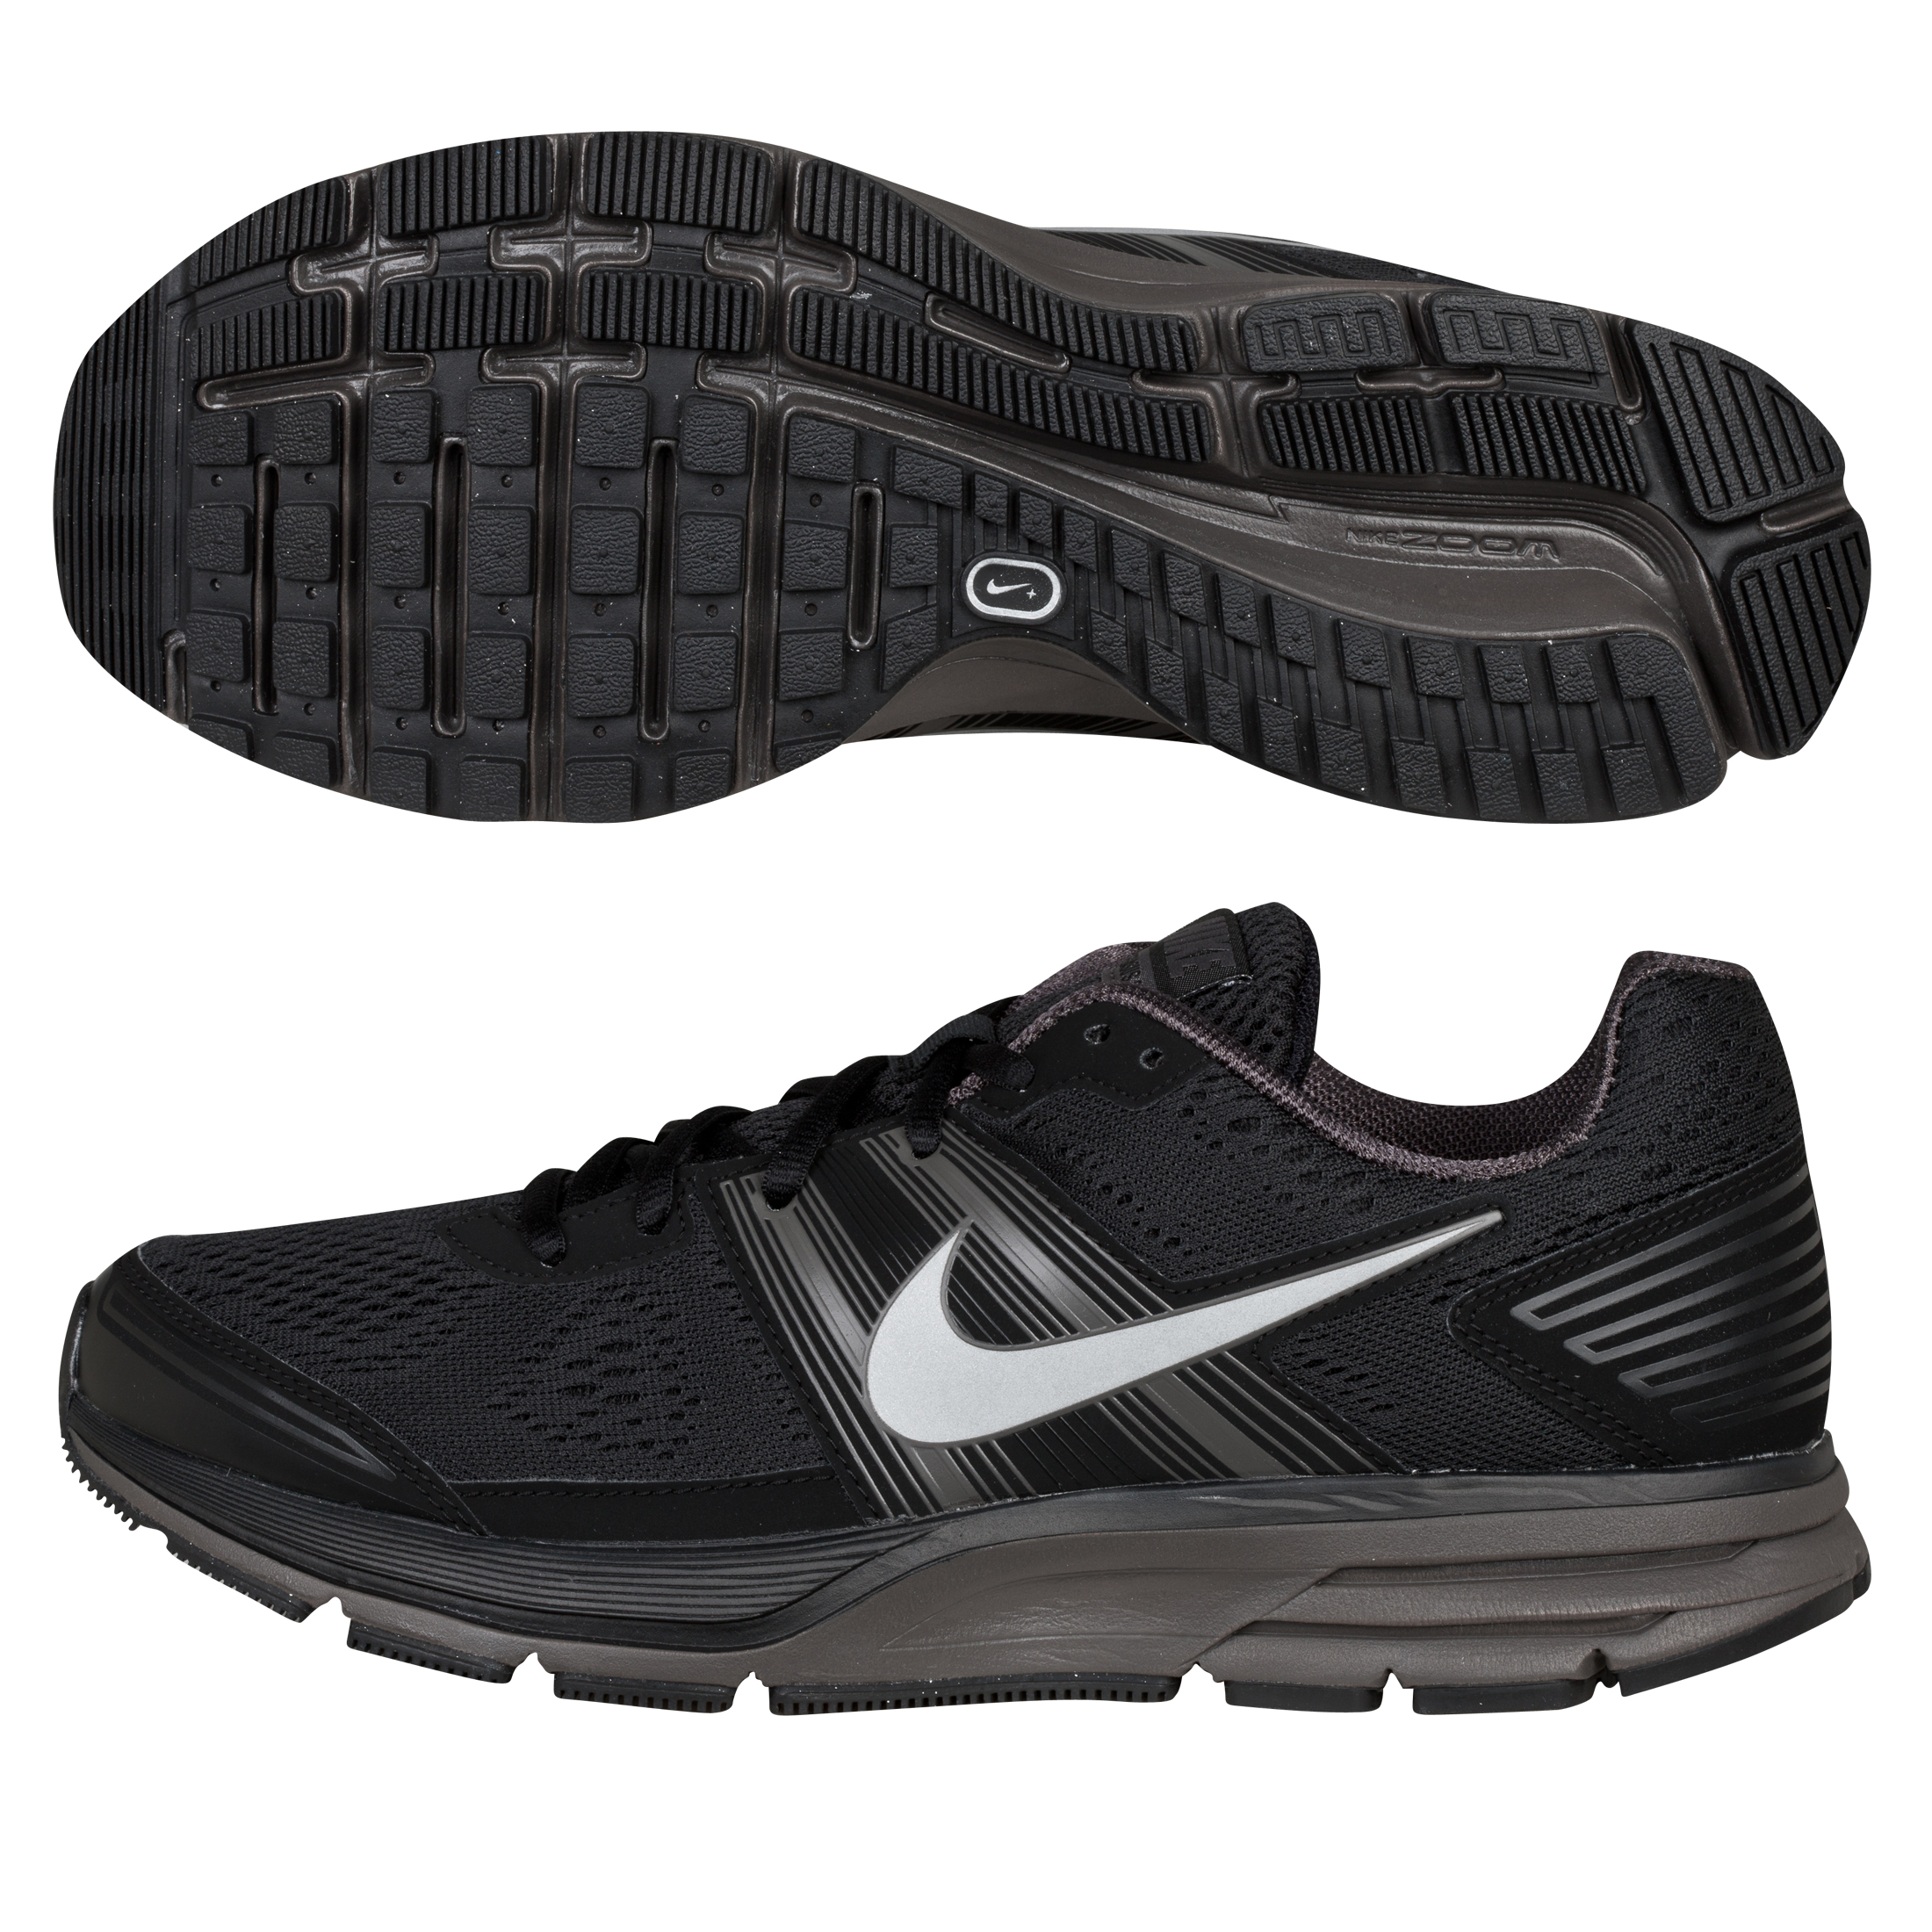 Nike Air Pegasus+ 29 Neutral Trainer - Black